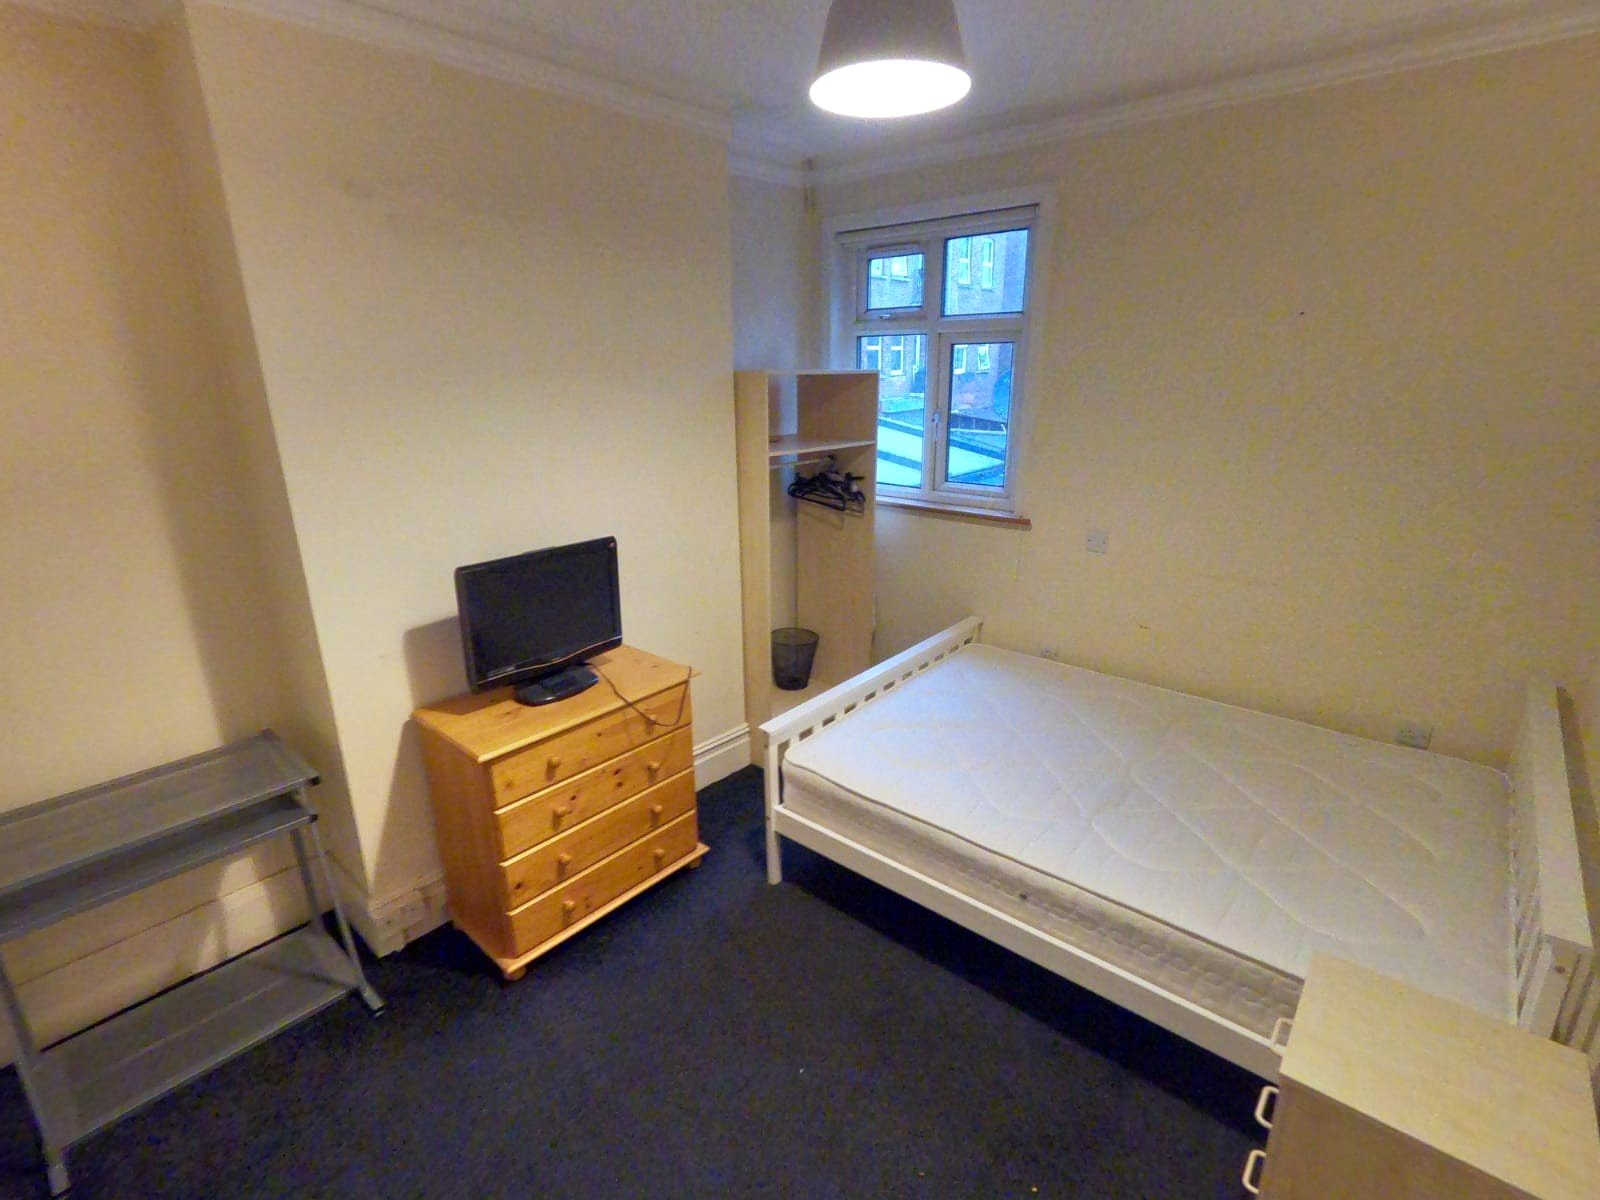 1 bed apartment to rent in Haringey, N4 1HY, N4 1